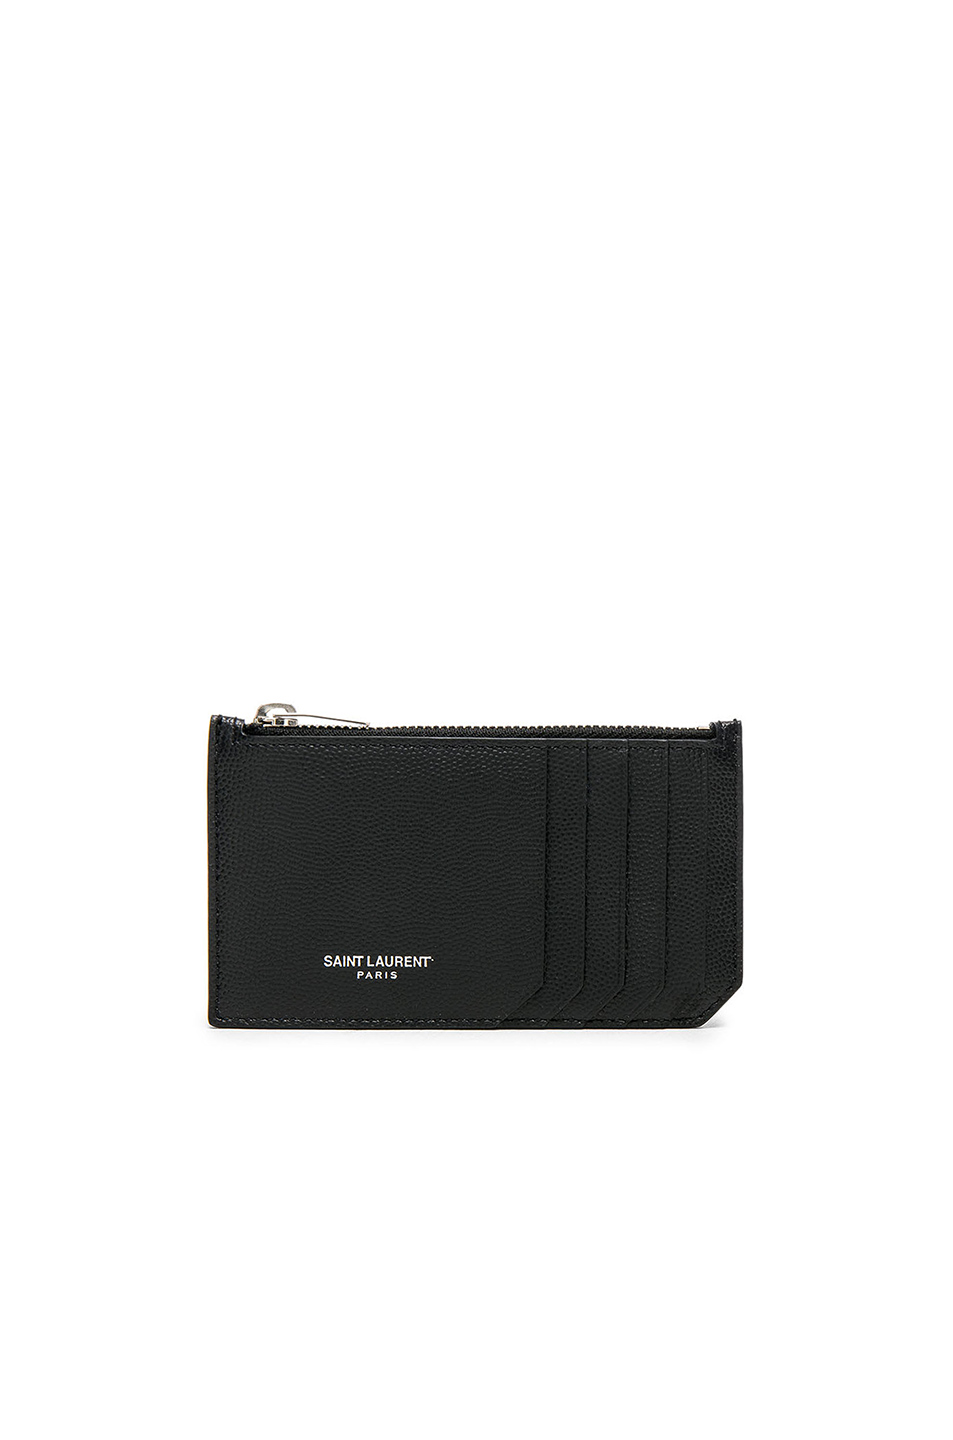 Saint Laurent Zipped Fragments Credit Card Case in Black